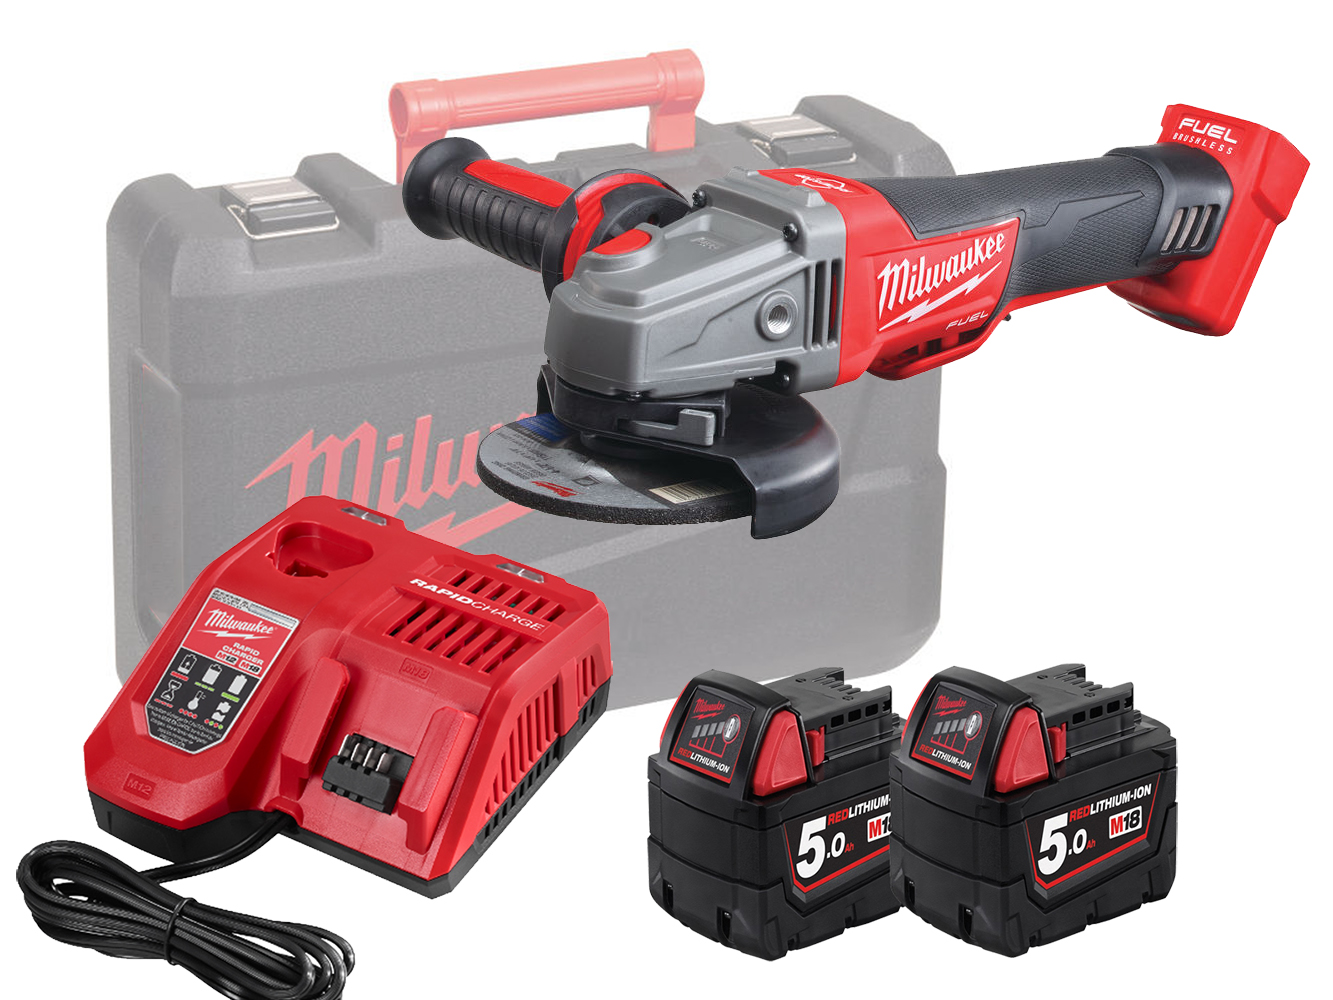 MILWAUKEE 18V FUEL 115MM BREAKING GRINDER -  M18CAG115XPDB - 5.0AH PACK